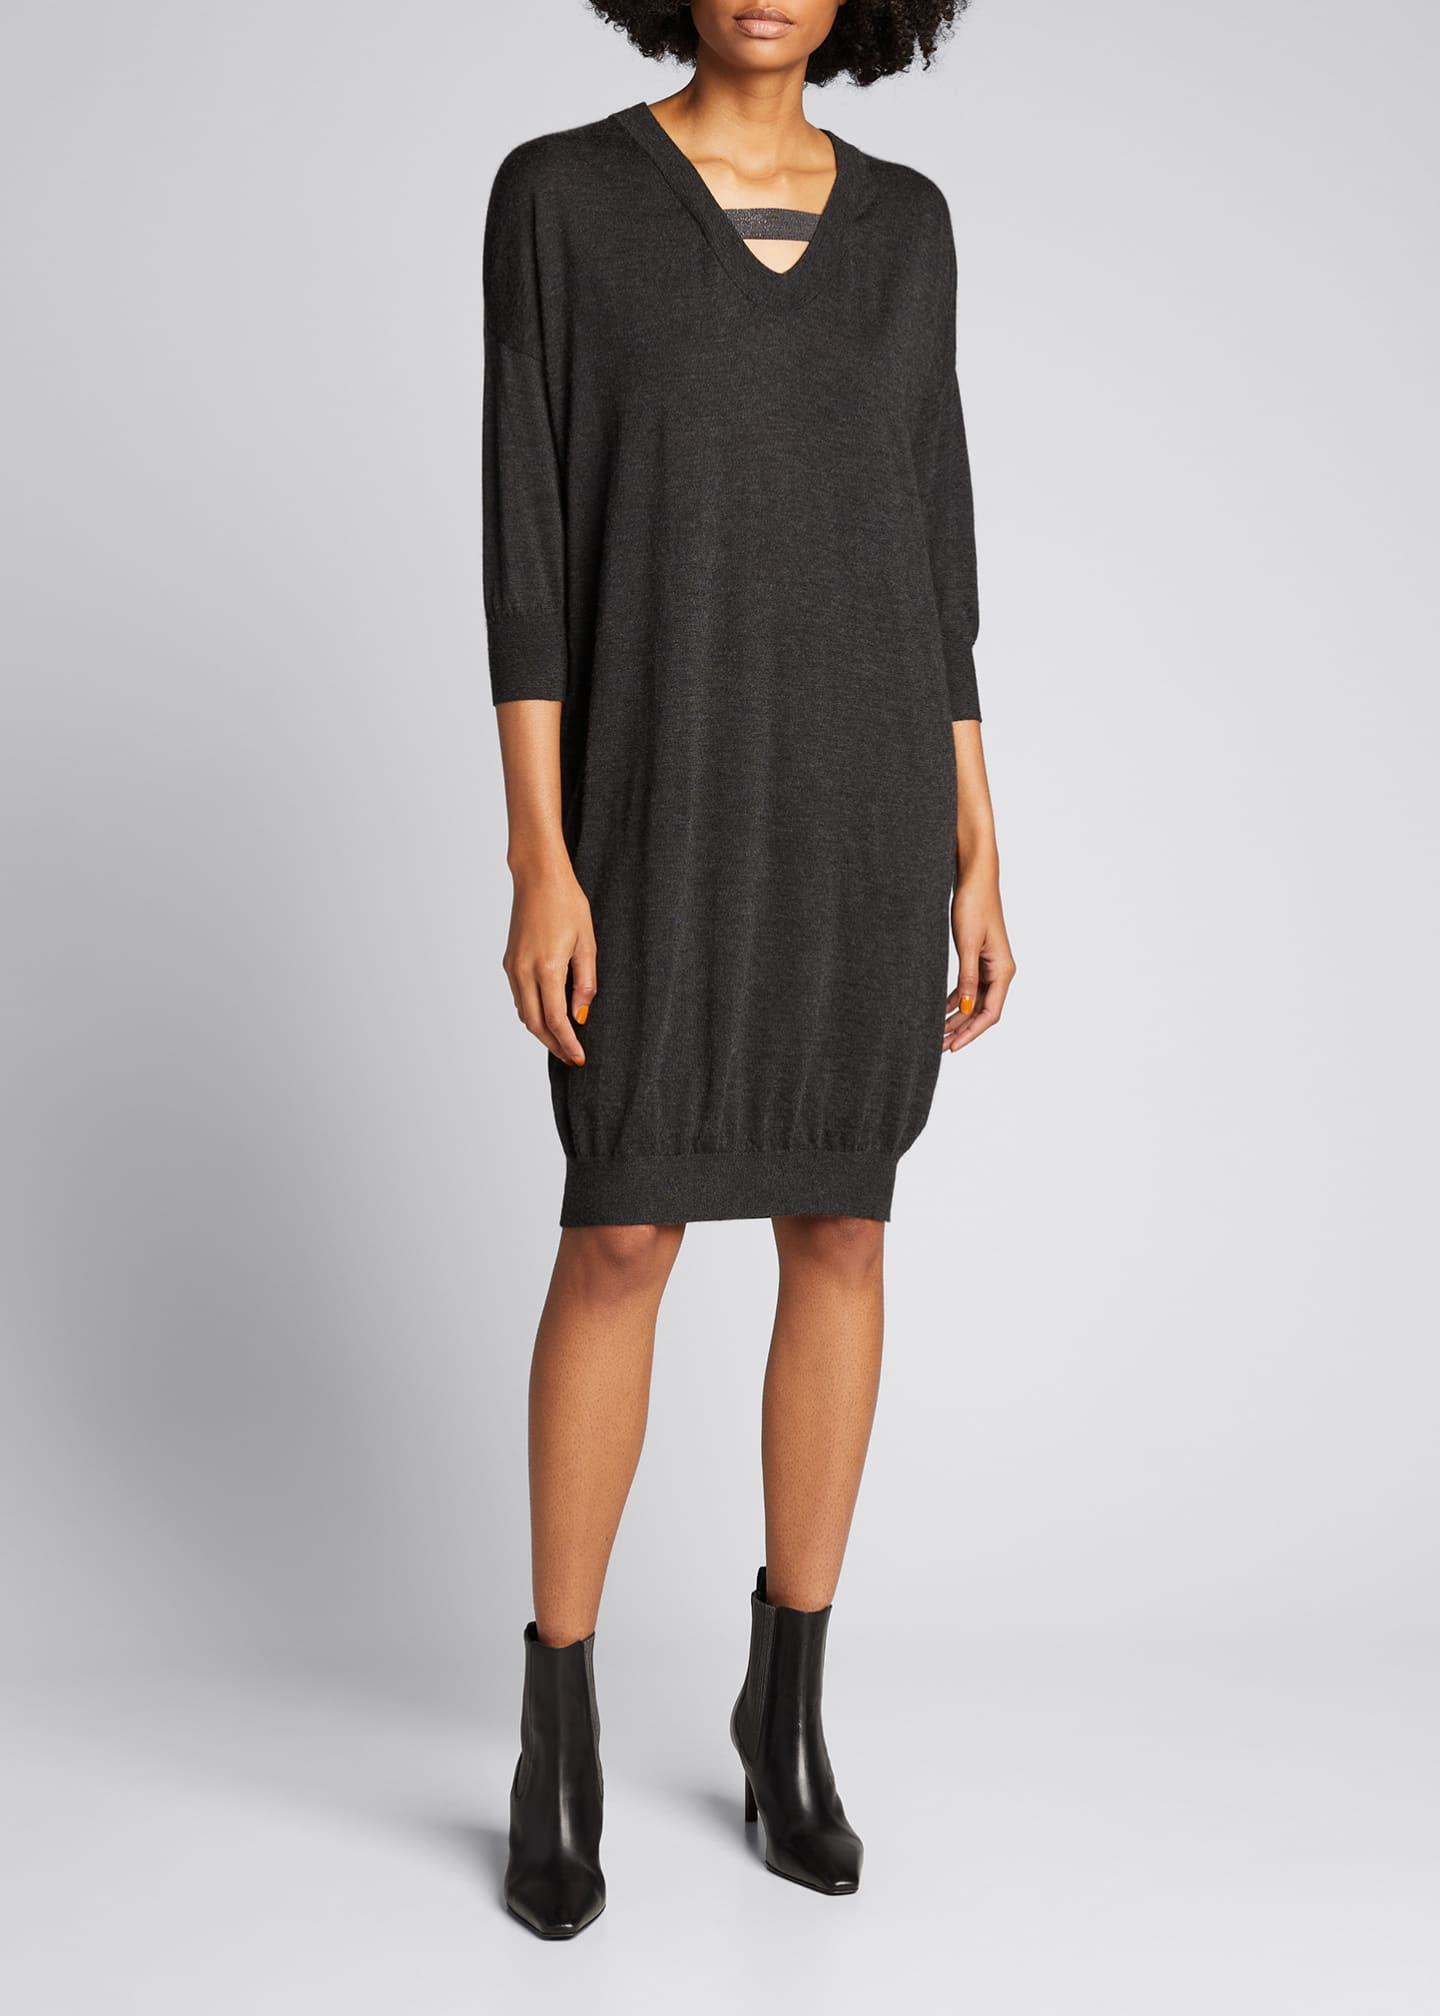 Image 1 of 5: Cashmere Silk Knit Dress with Monili Strap